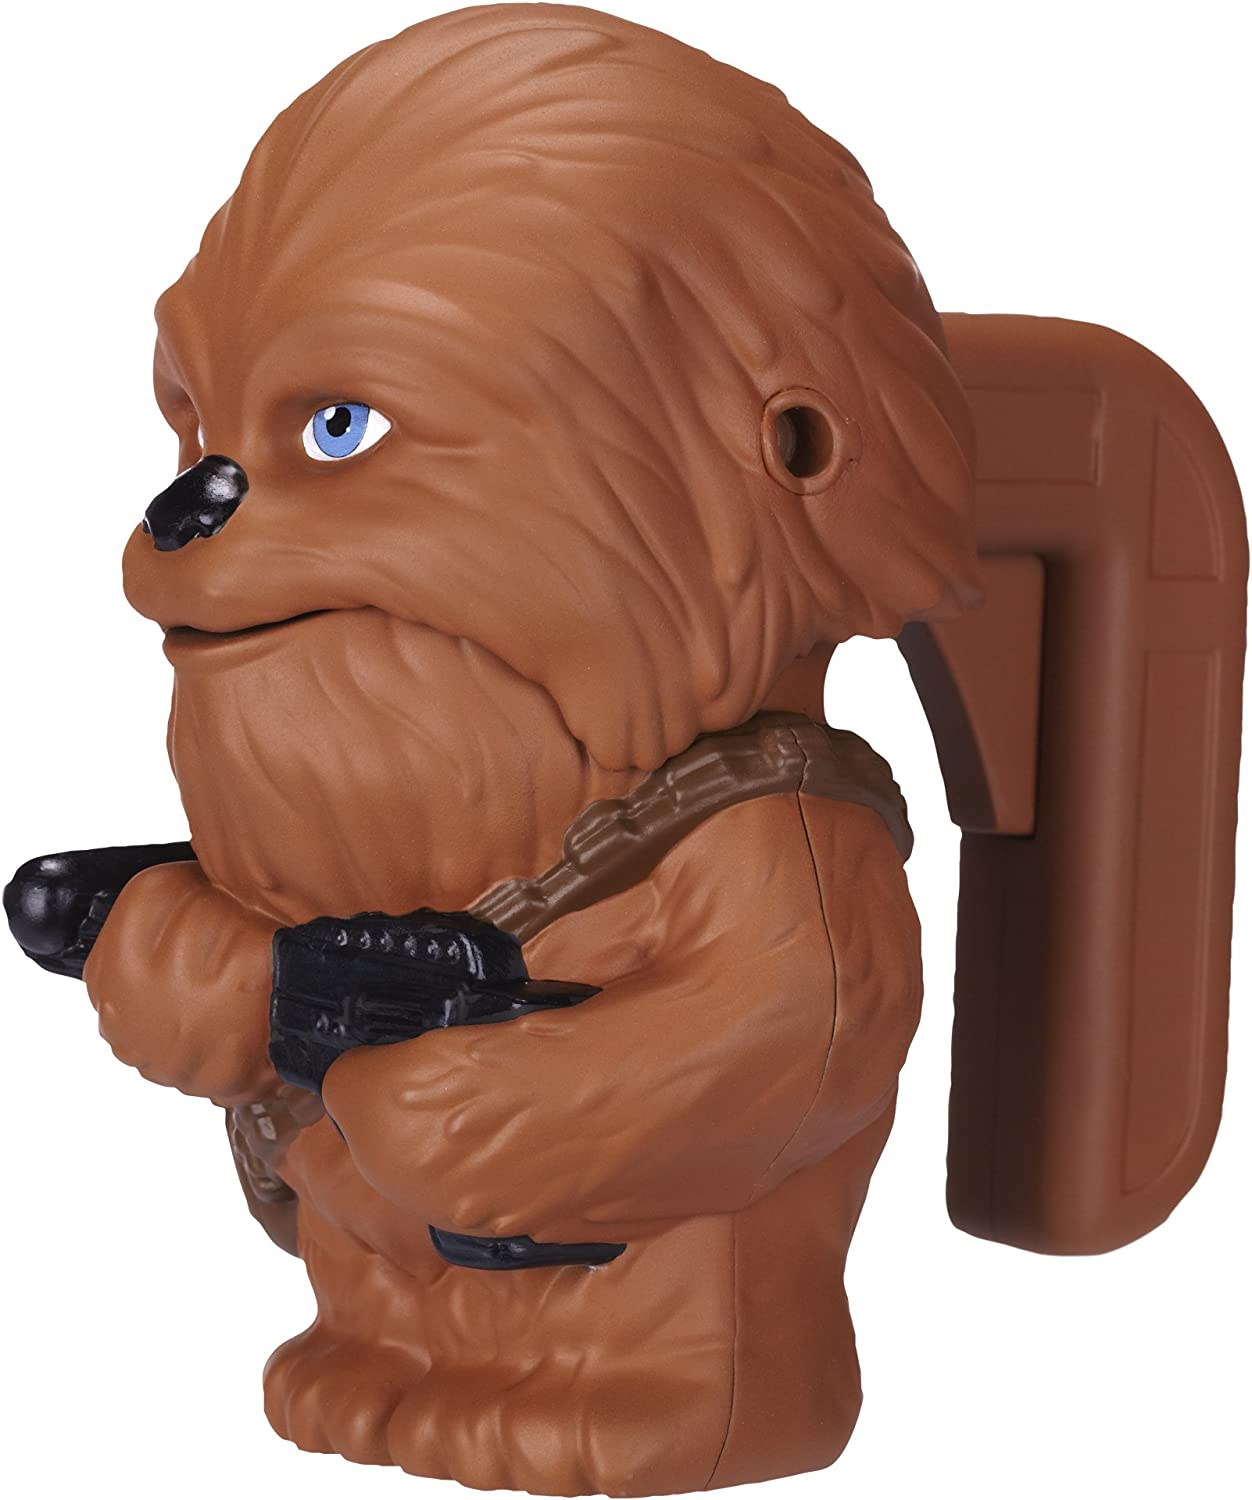 Star Wars Flashlight  Chewbacca